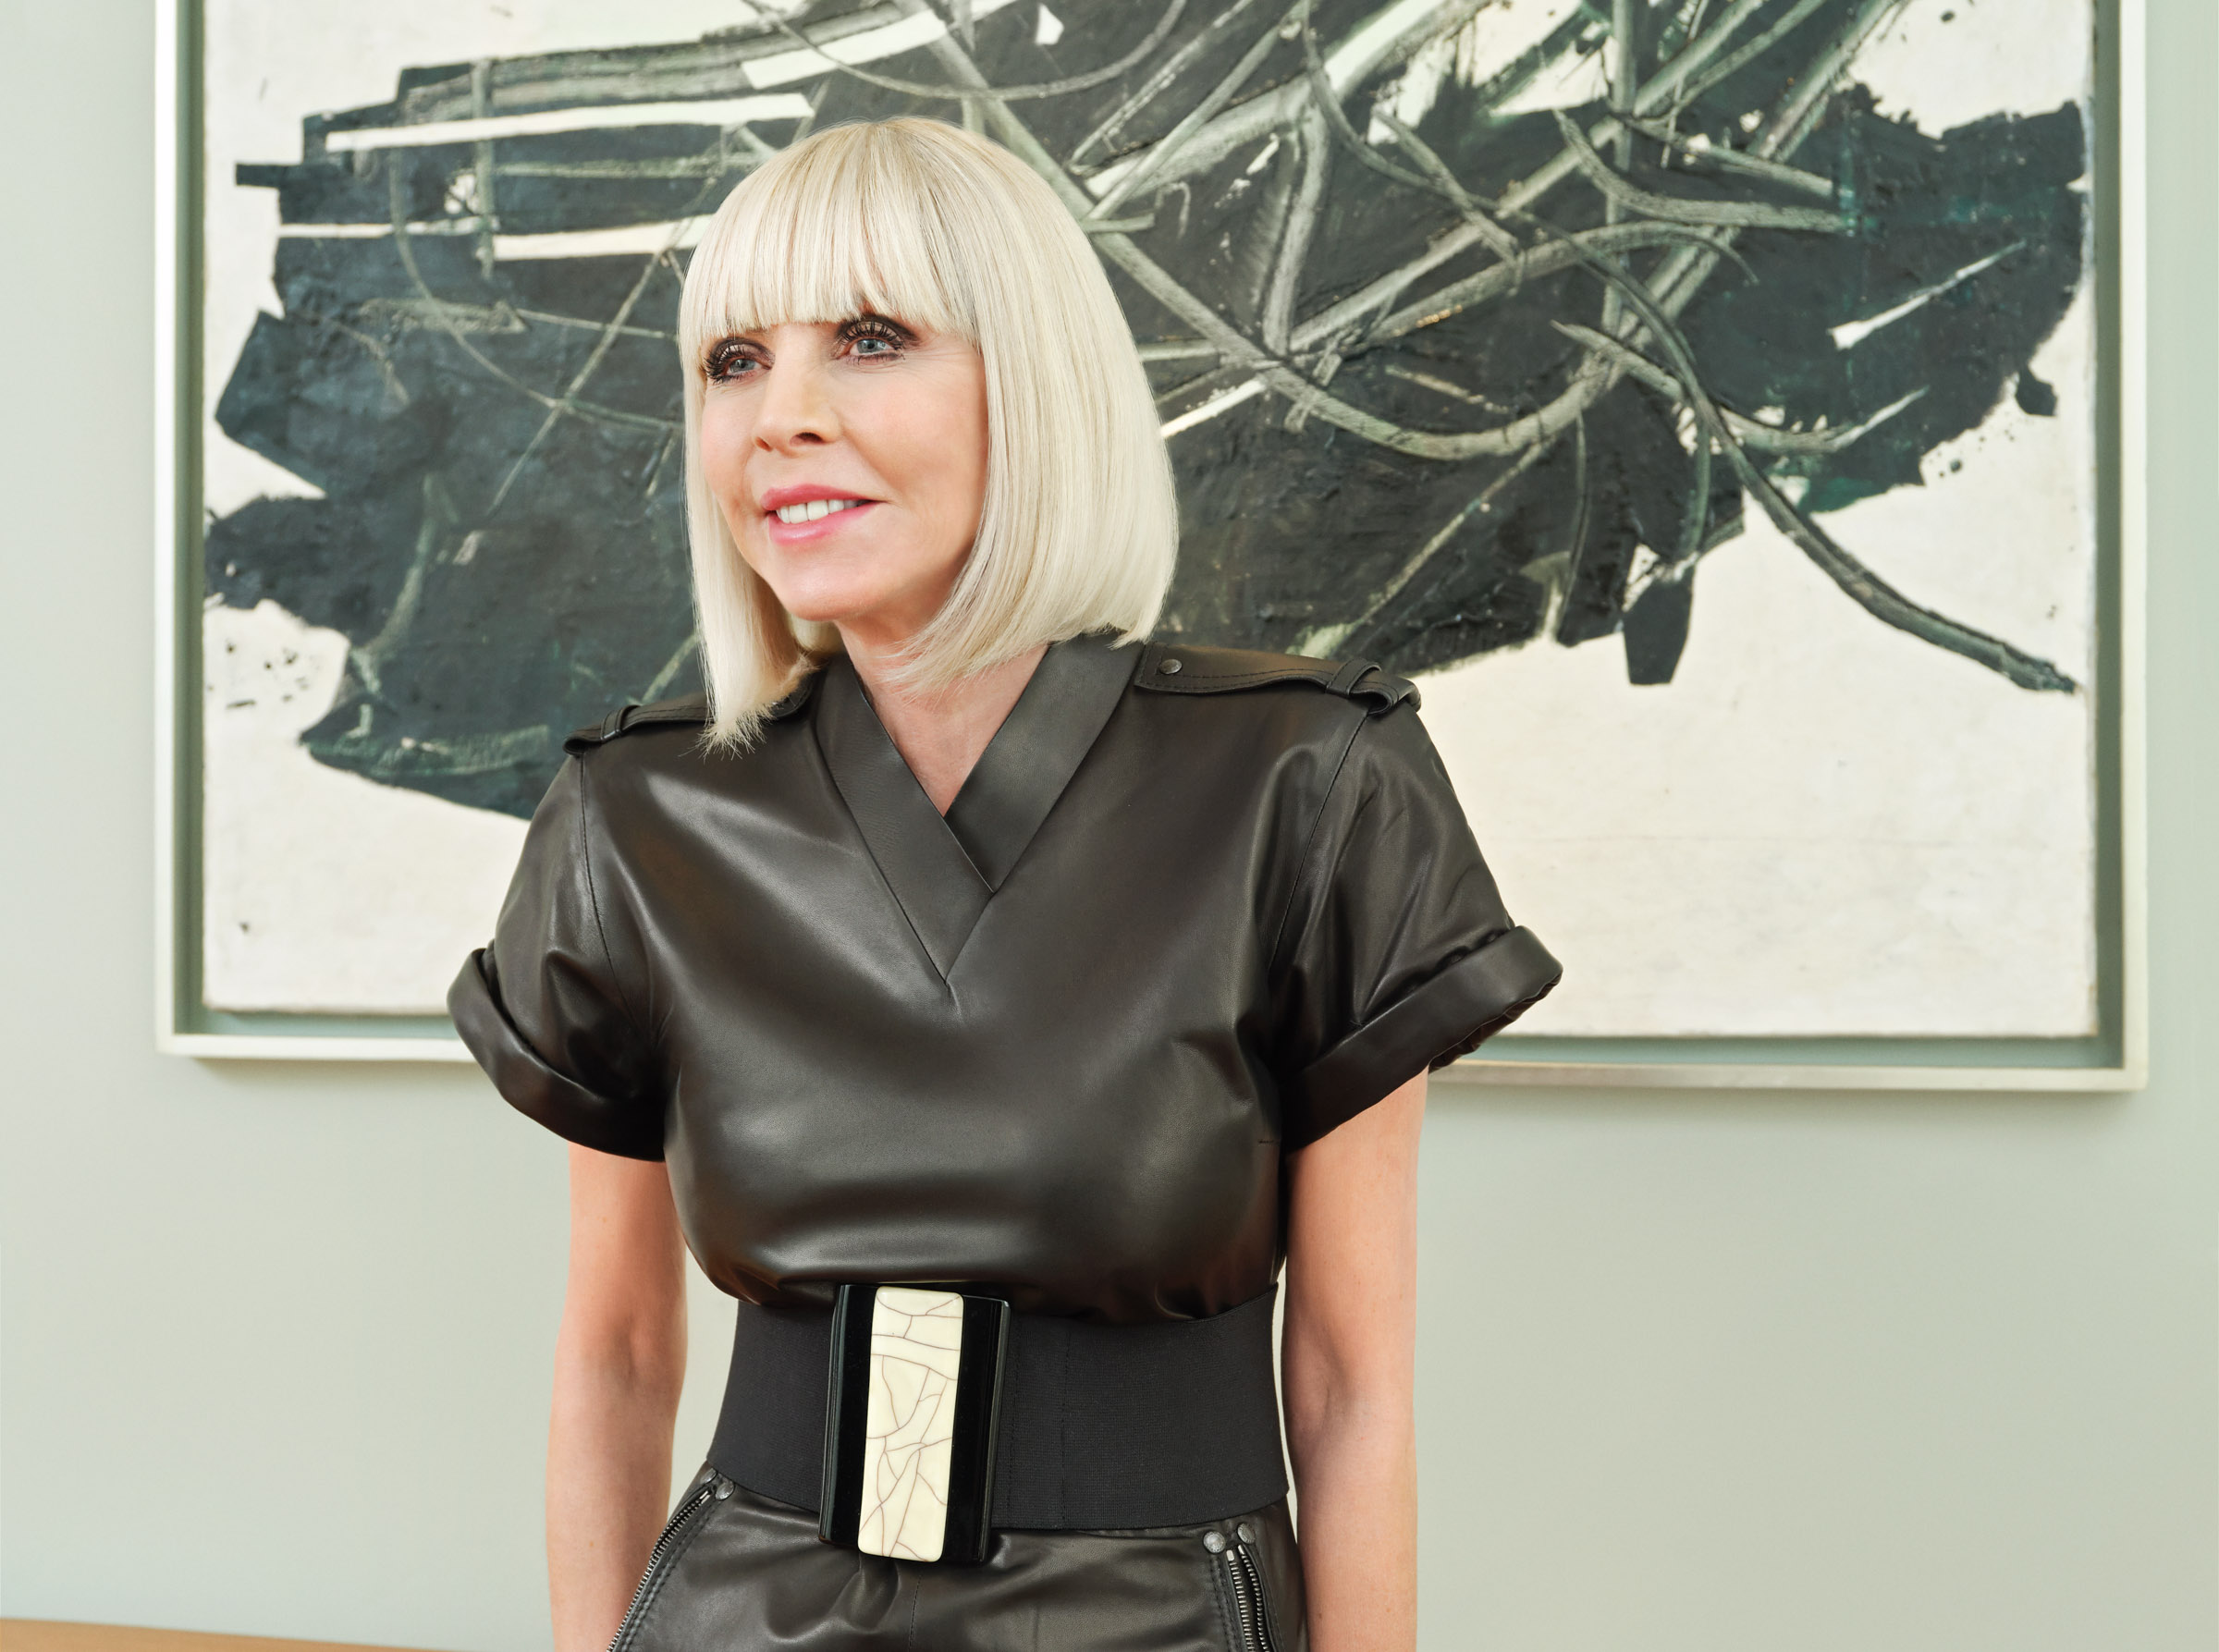 Collector and museum founder Grażyna Kulczyk explains how a work by Bernar Venet sparked new ventures